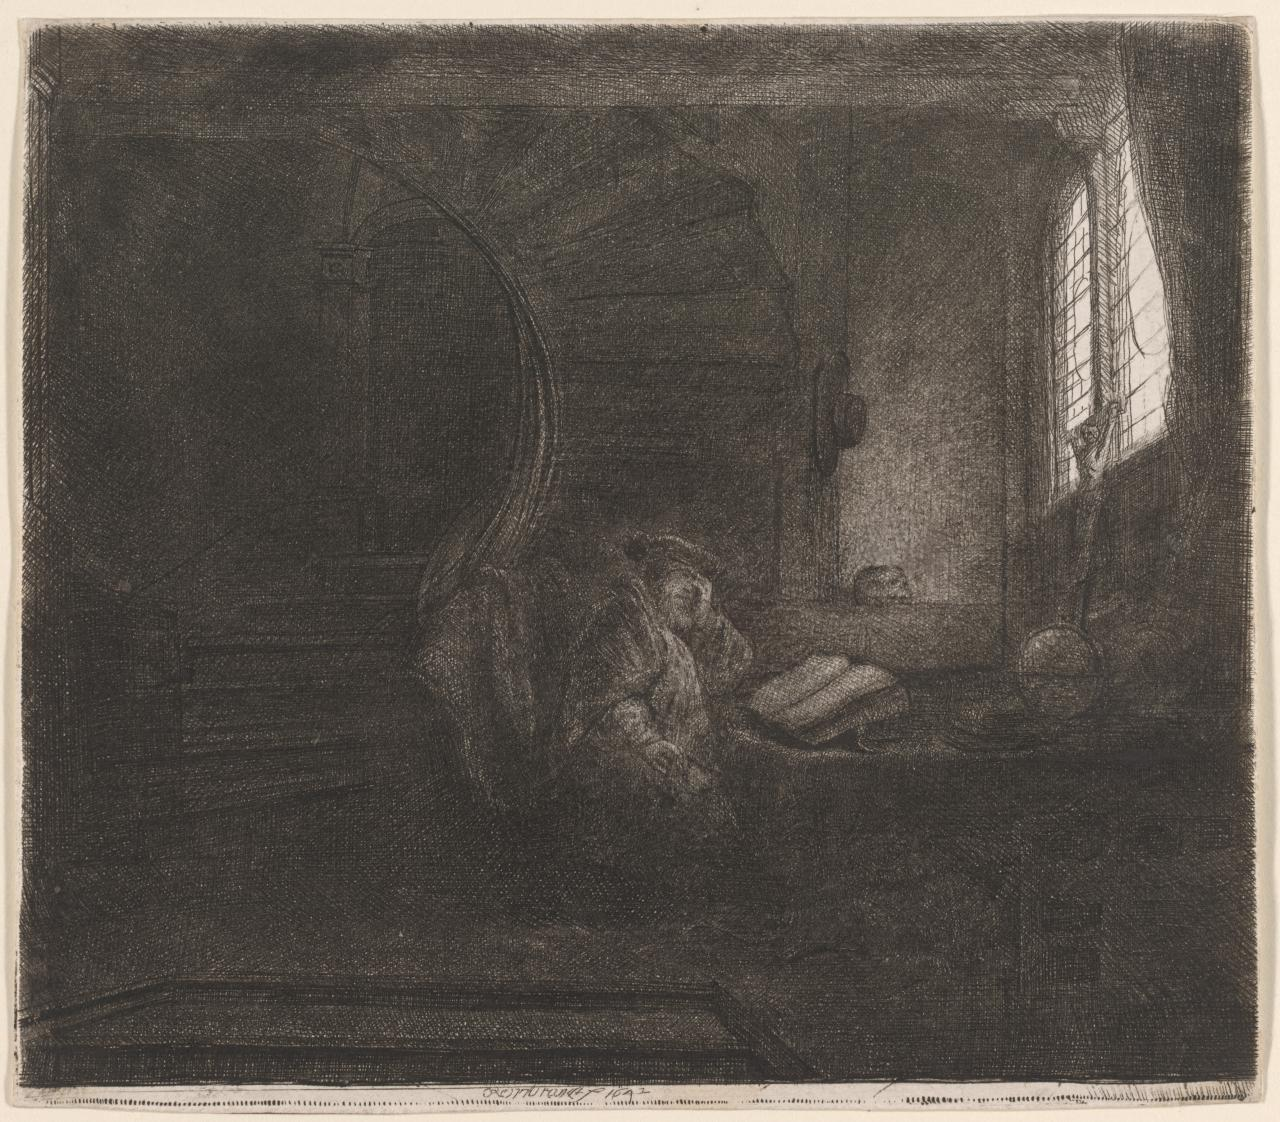 St Jerome in a Dark Chamber